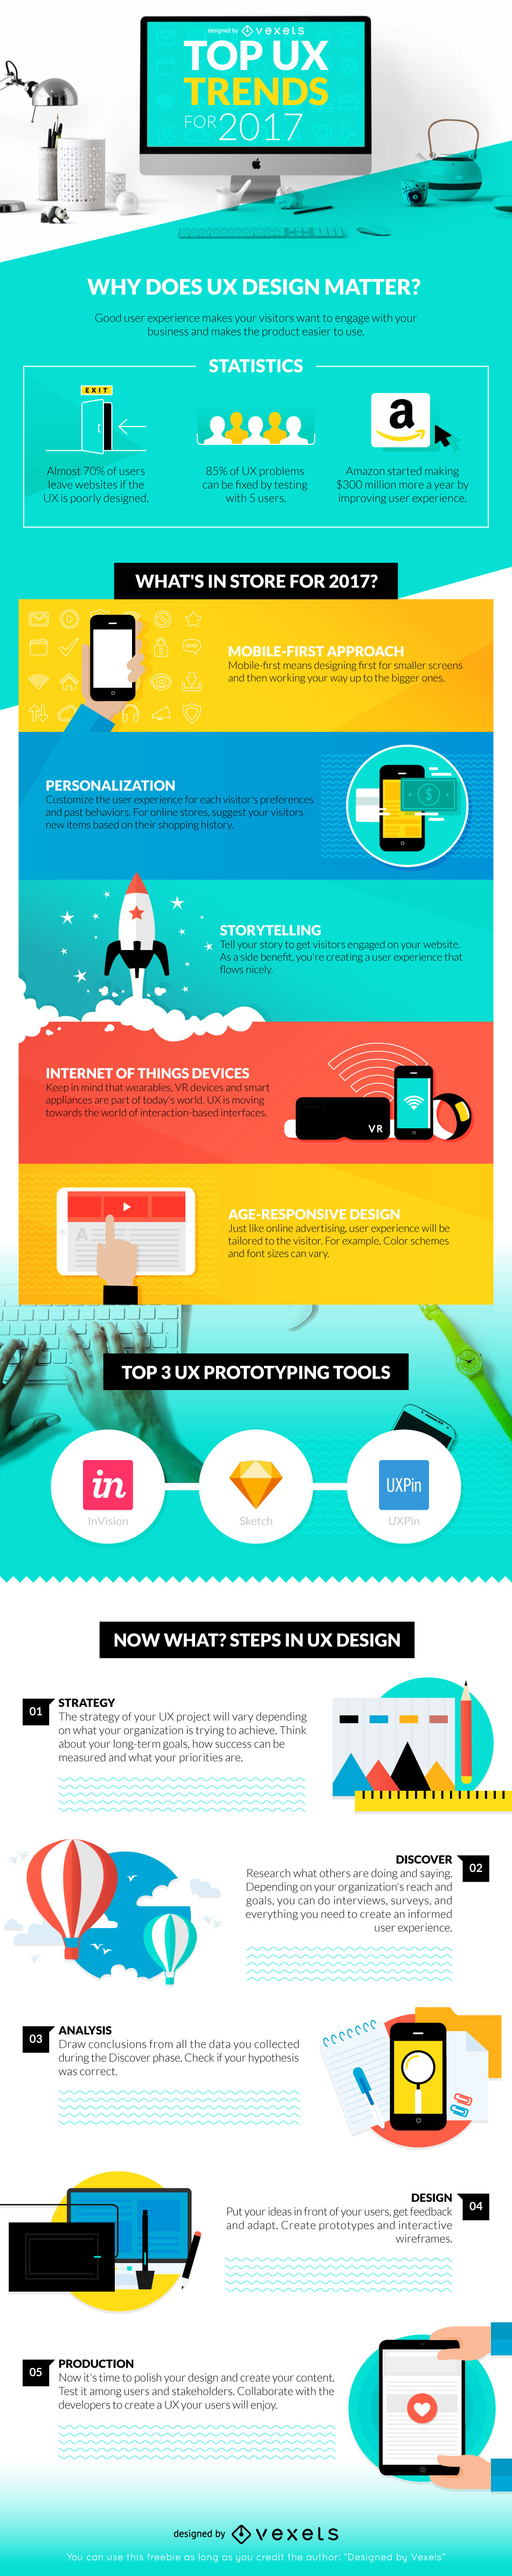 Top UX Trends for 2017